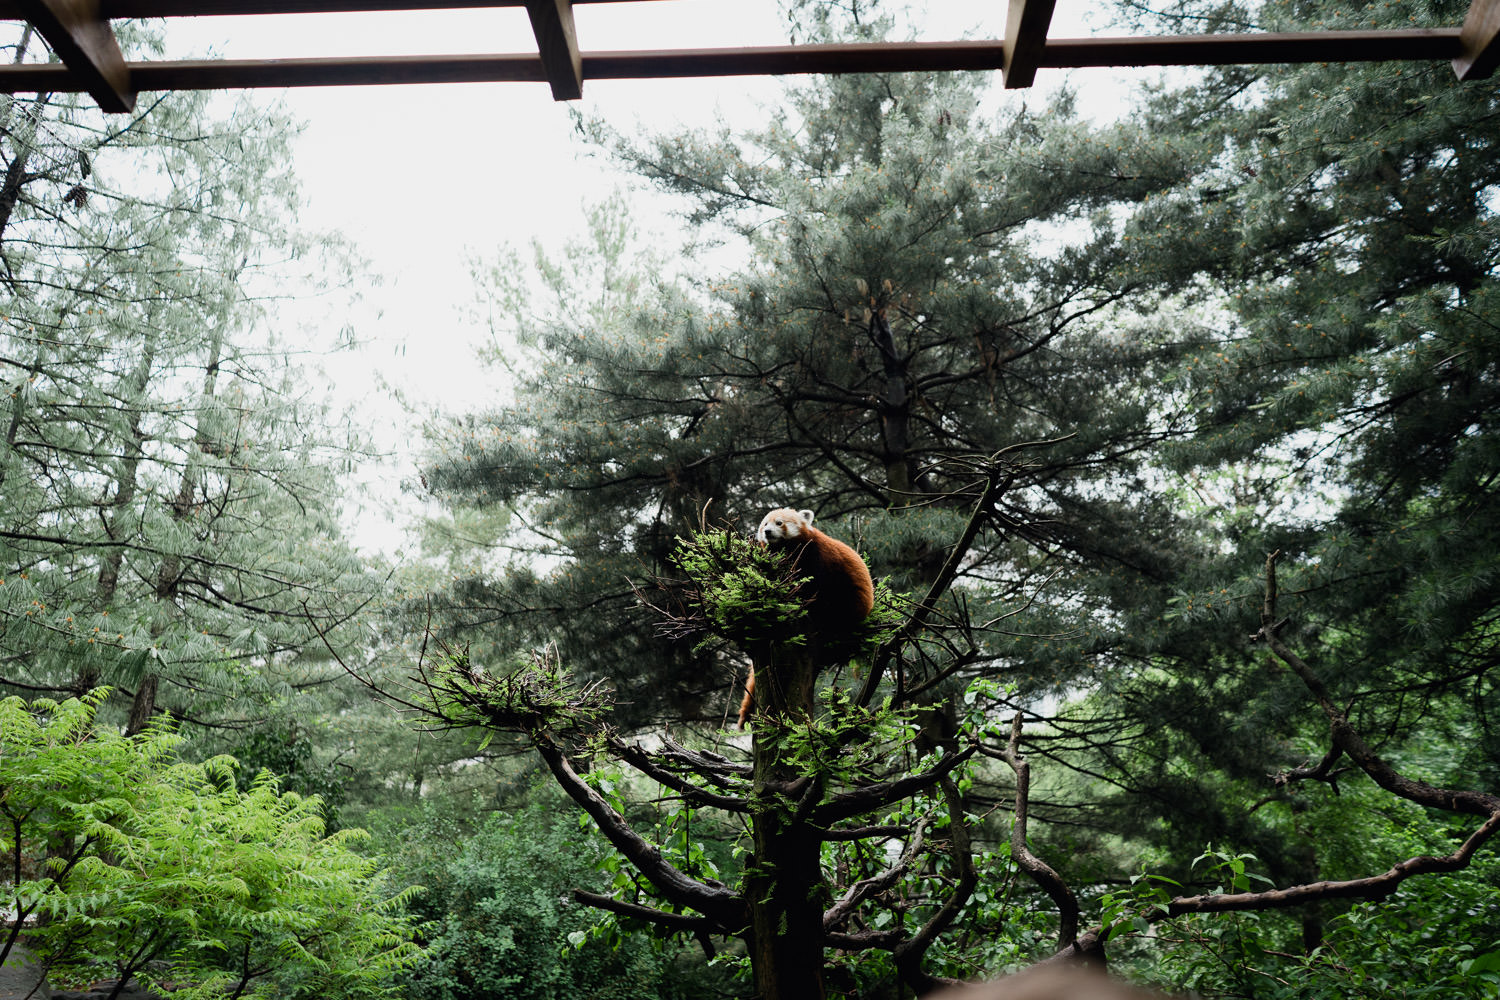 A red panda at the Central Park Zoo.